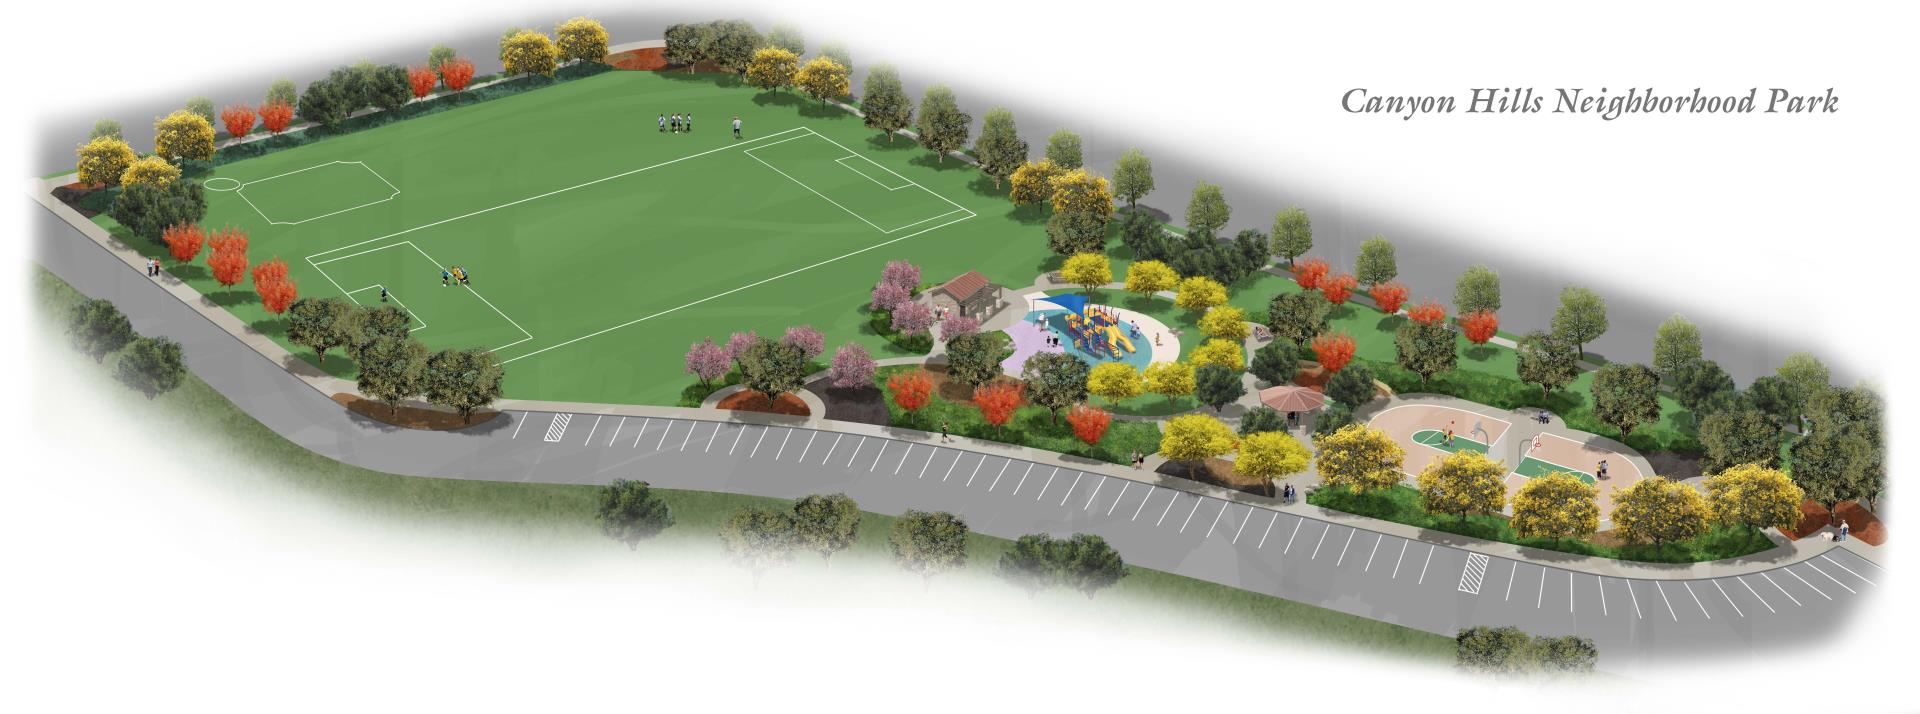 Canyon Hills 5.7 Acre Park Bird's Eye Rendering